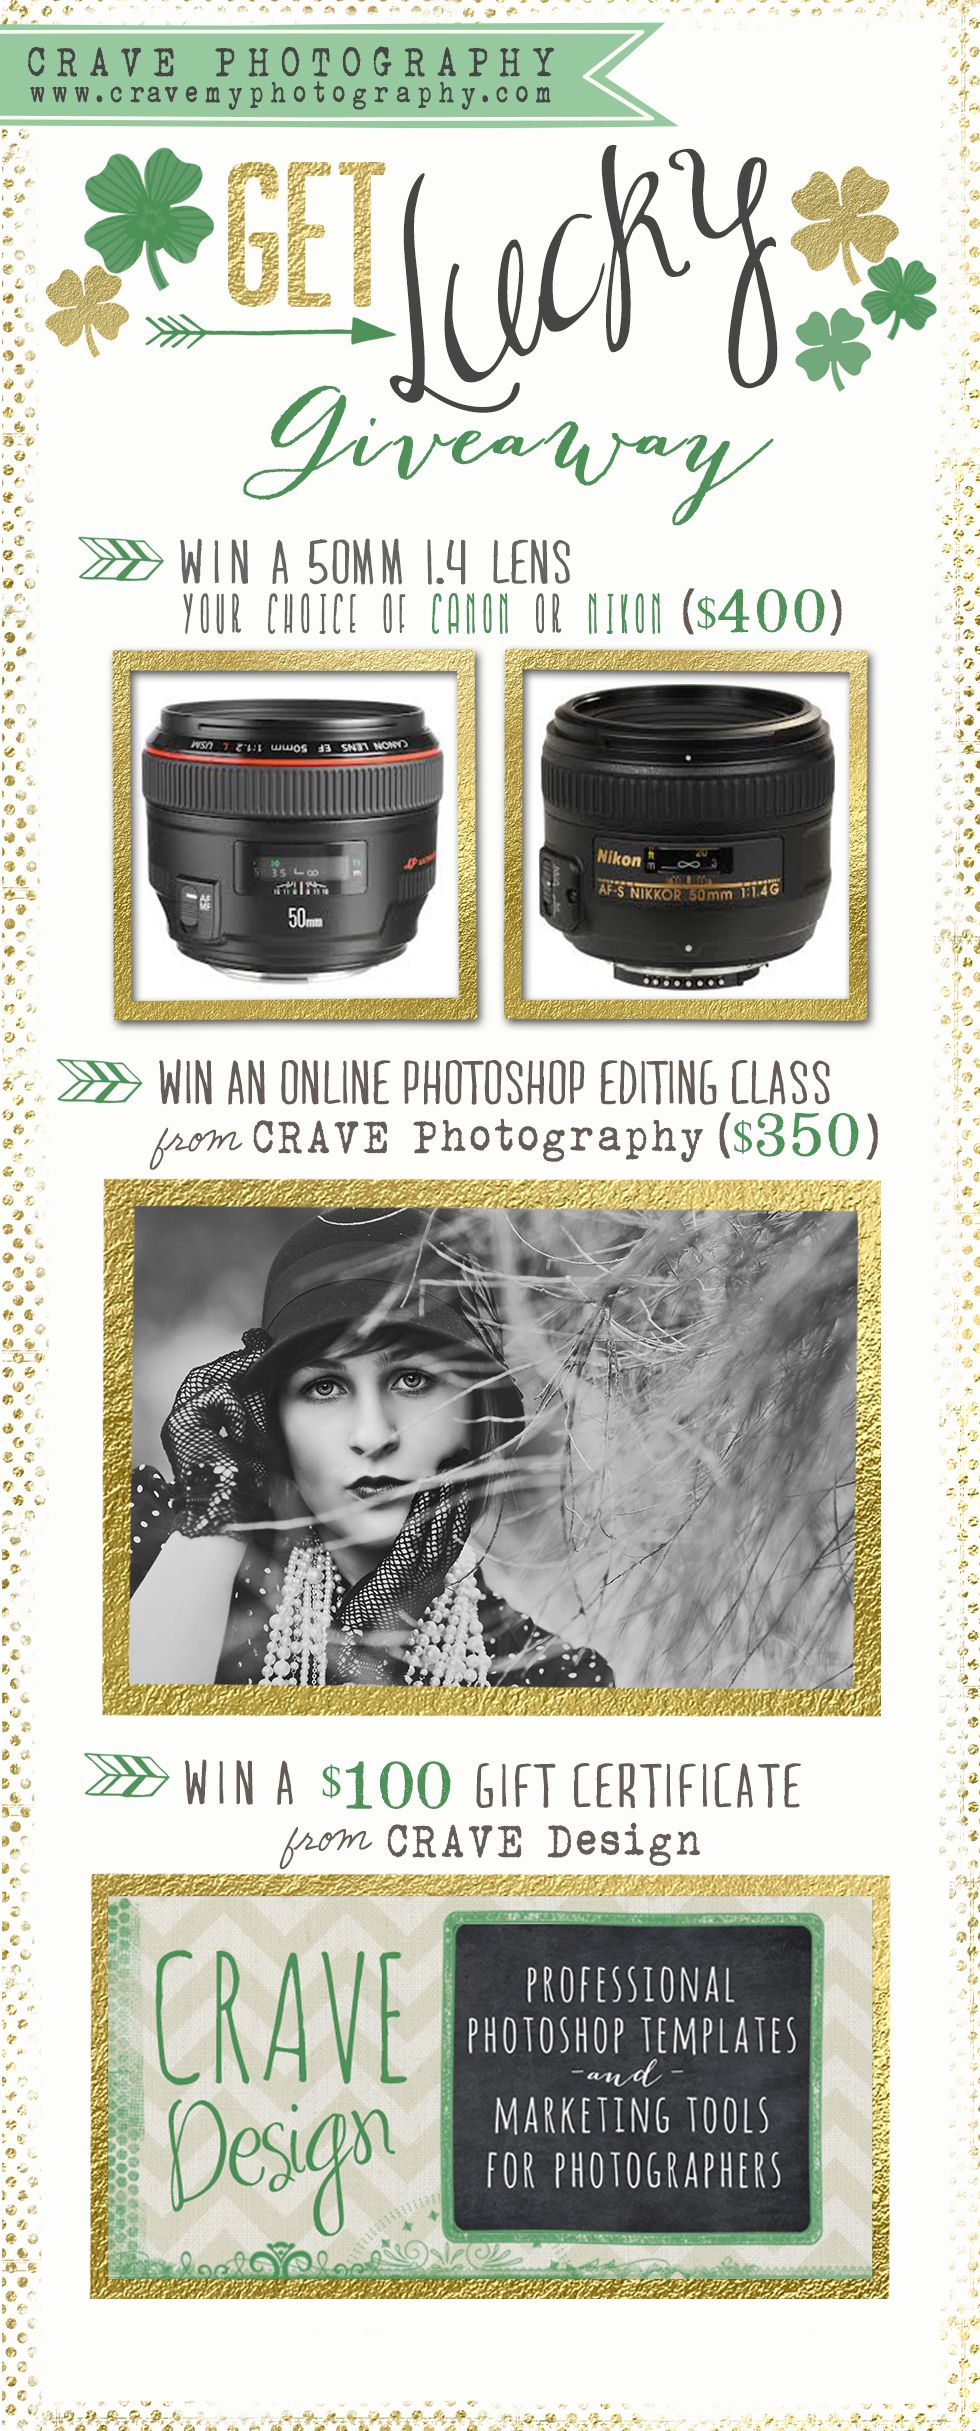 LAST DAY -- ENTER TO WIN A FREE 50mm 1.4 LENS!!!  http://cravemyphotography.com/blog/get-lucky-lens-giveaway/